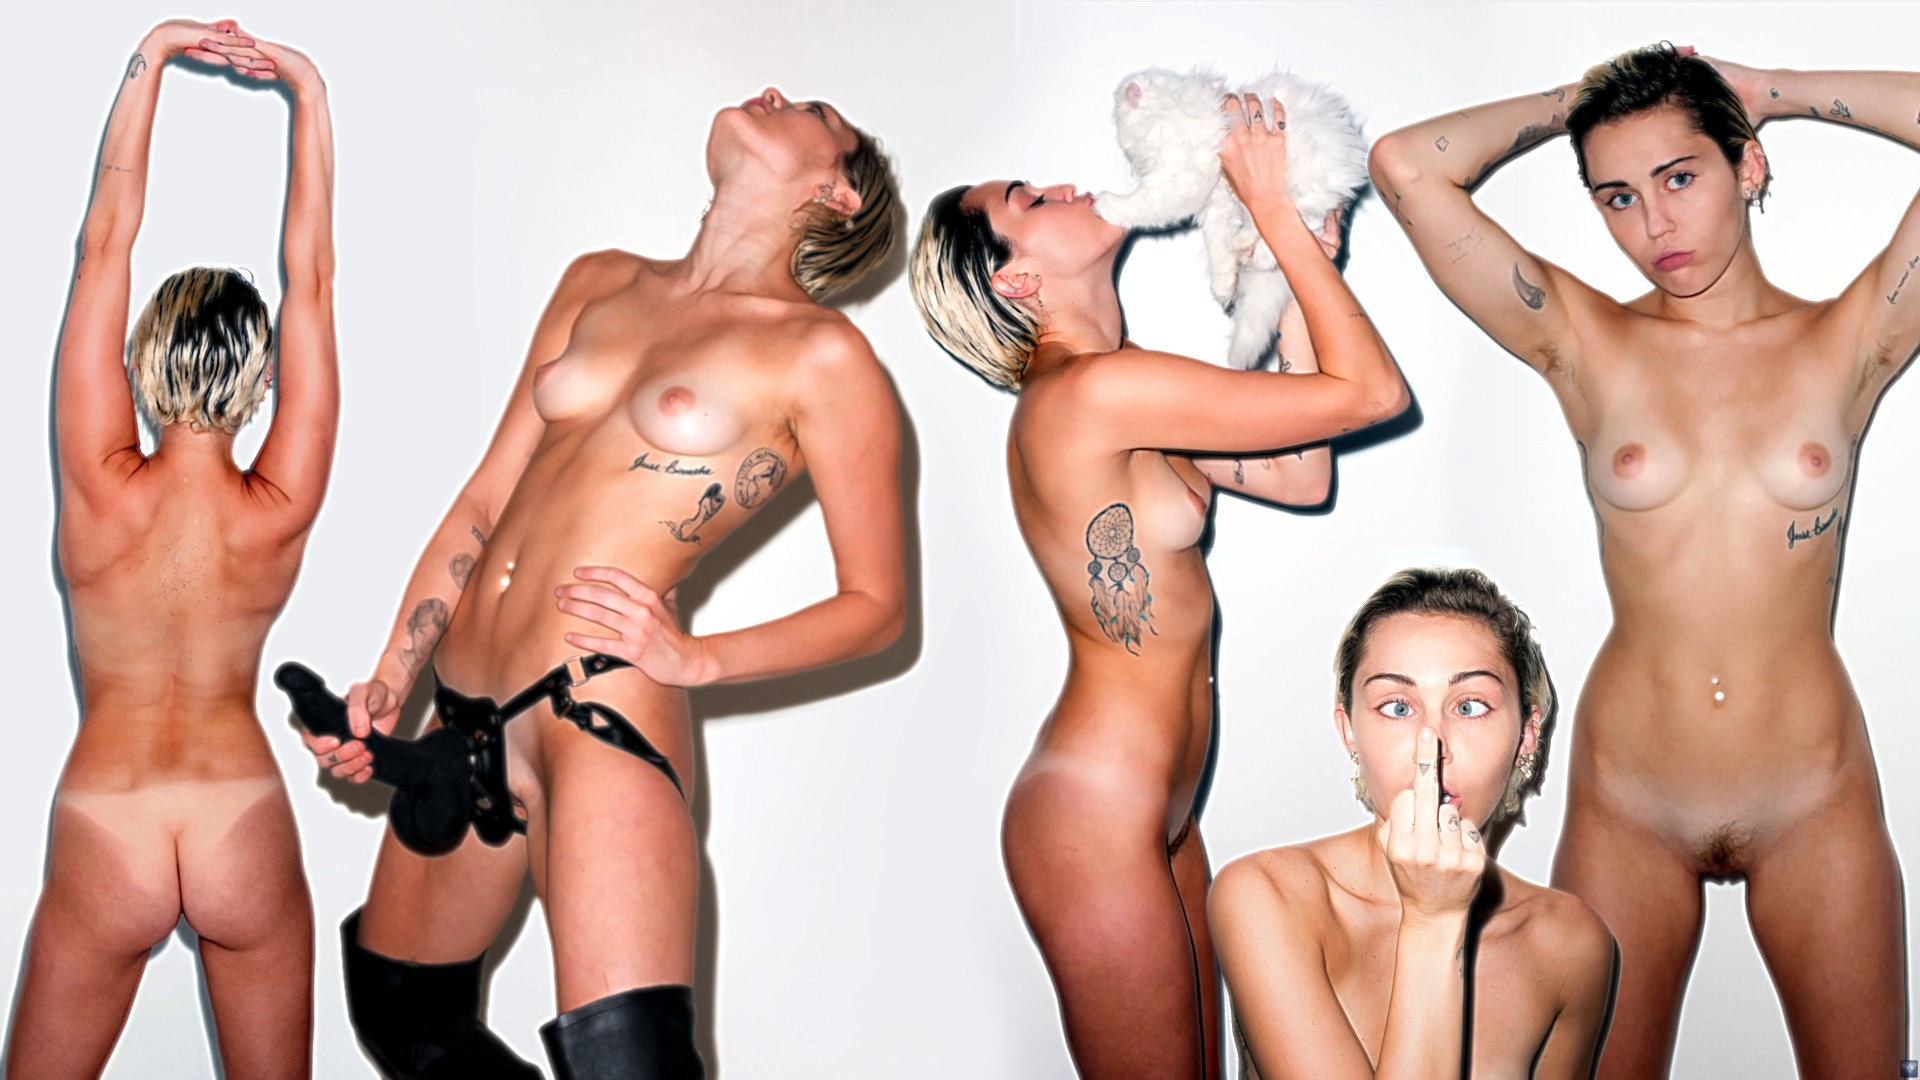 Naked miley cyrus title object object